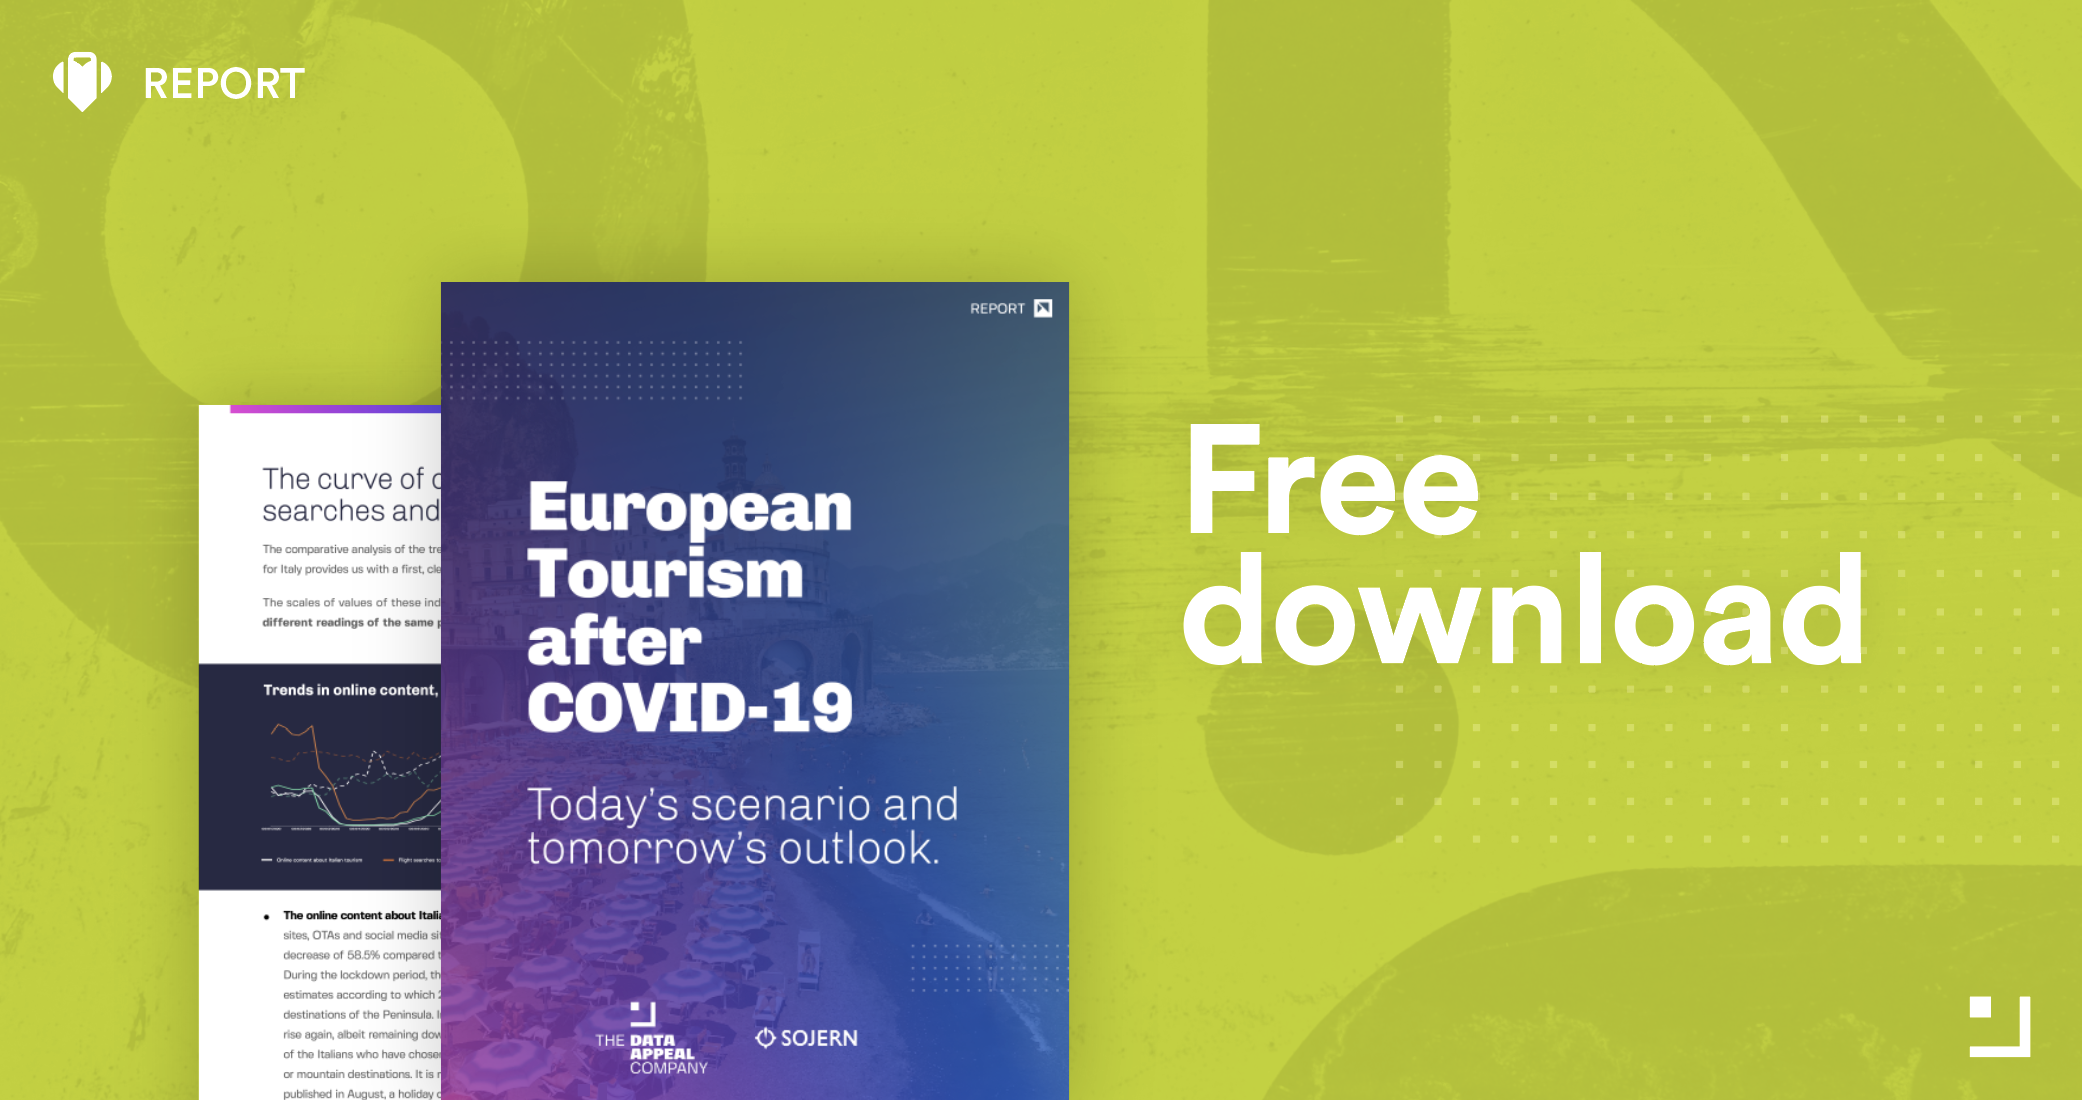 [Free Report] European Tourism after COVID-19: What can we expect?